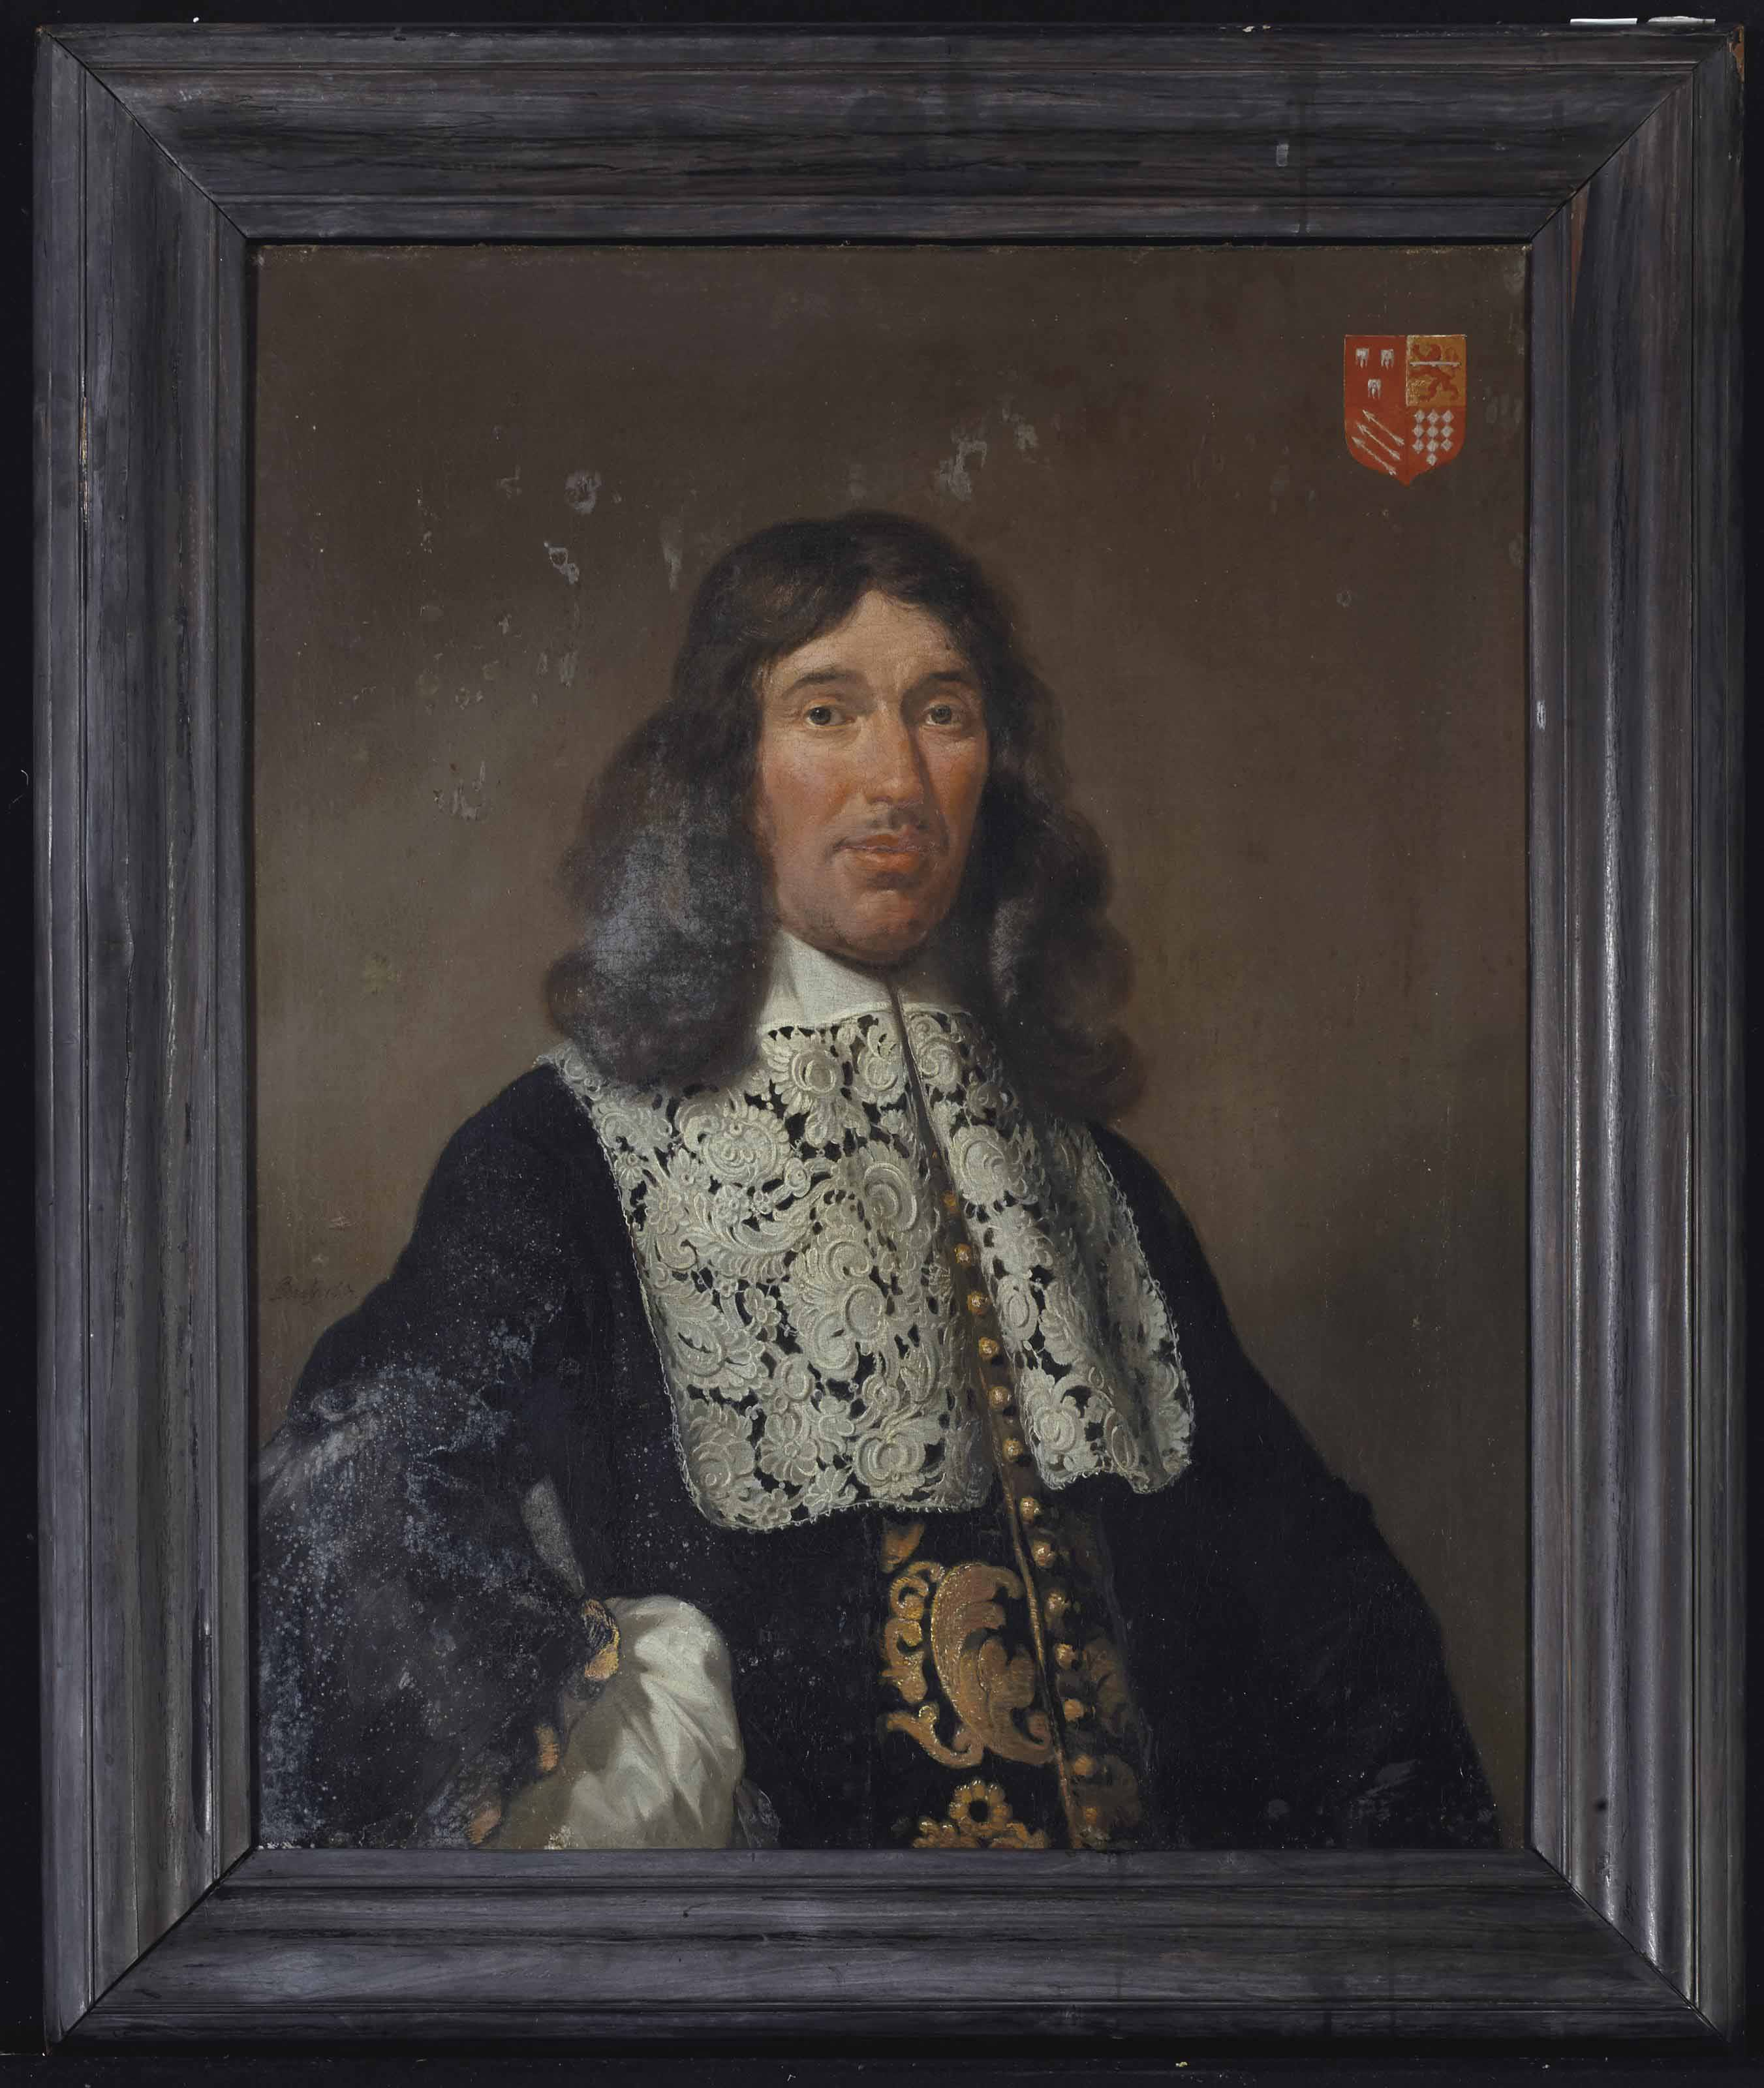 Portrait of Bartholomeus de Kies van Wissen (1614-1679), half-length, with arms akimbo, in a gold embroidered black costume, a white chemise and an elaborate lace collar